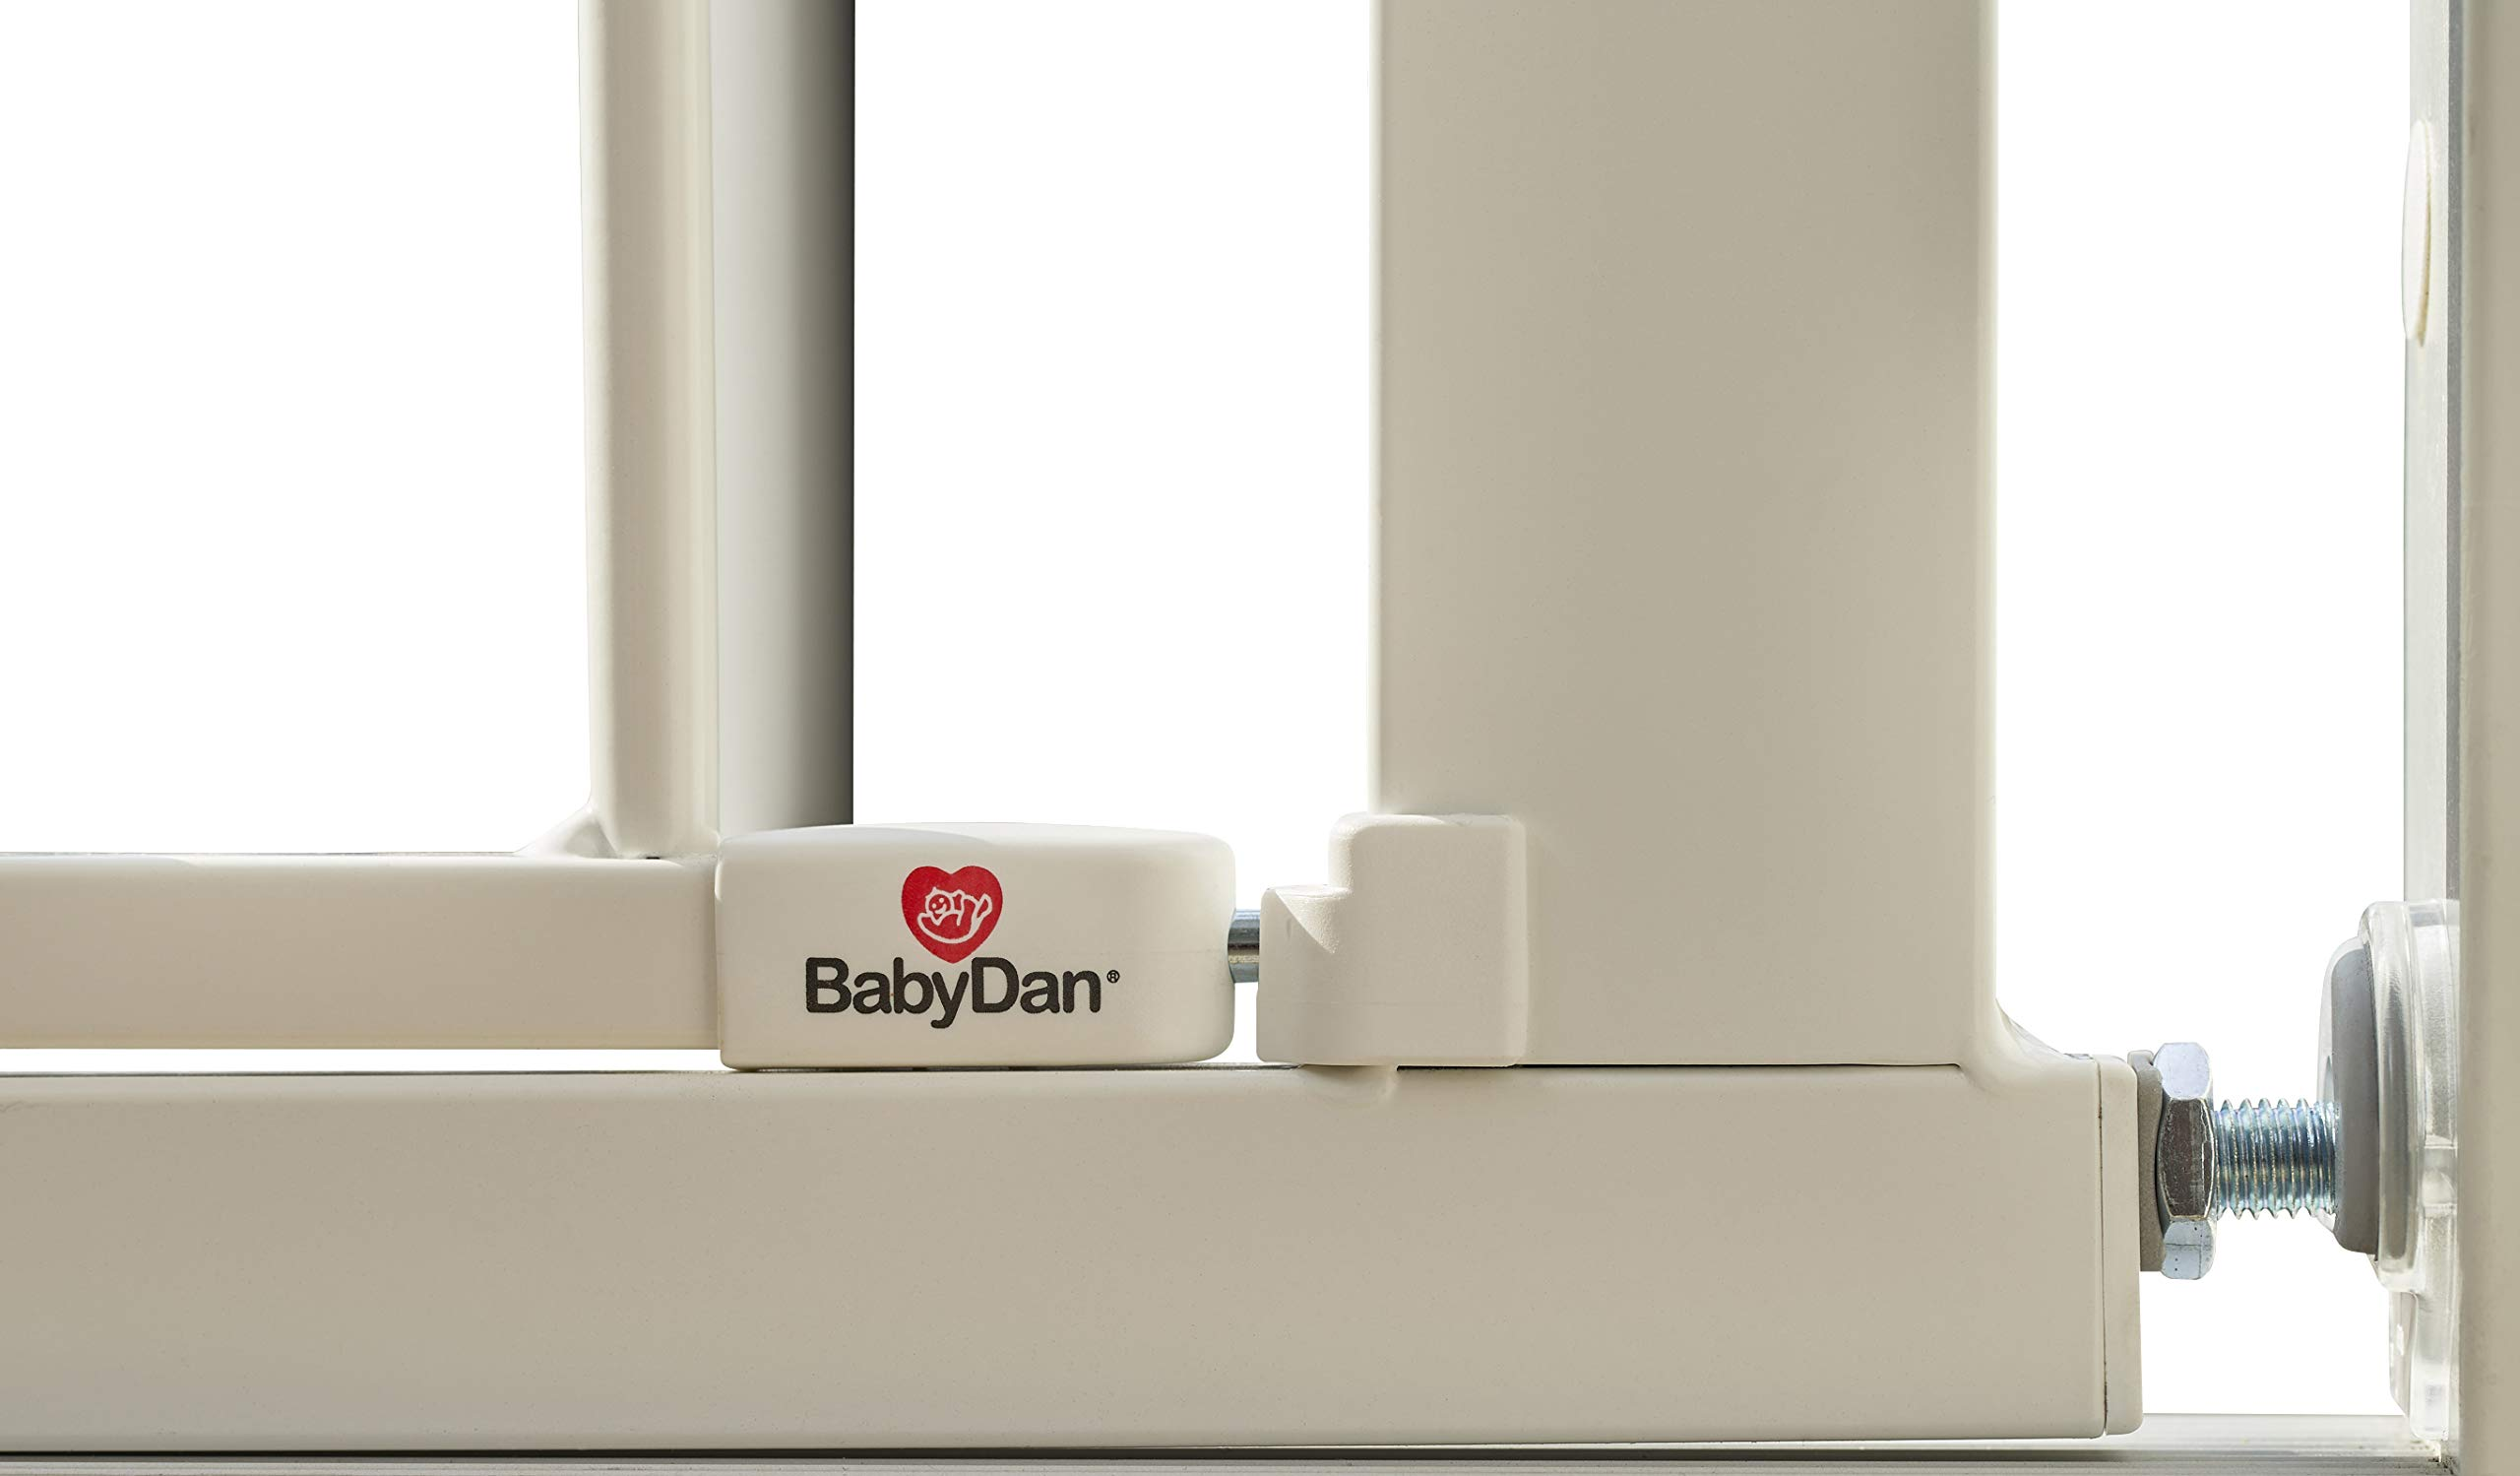 BabyDan Perfect Close Extra Wide Safety Gate - 77.3cm-83.5cm BabyDan Extra wide pressure fit safety gate. standard gate fits doorways 77.3-83.5cm. max width 110cm Features a unique slam shut or silent close handle which locks closed automatically Extendable up to 110cm with extra exetsnions 5